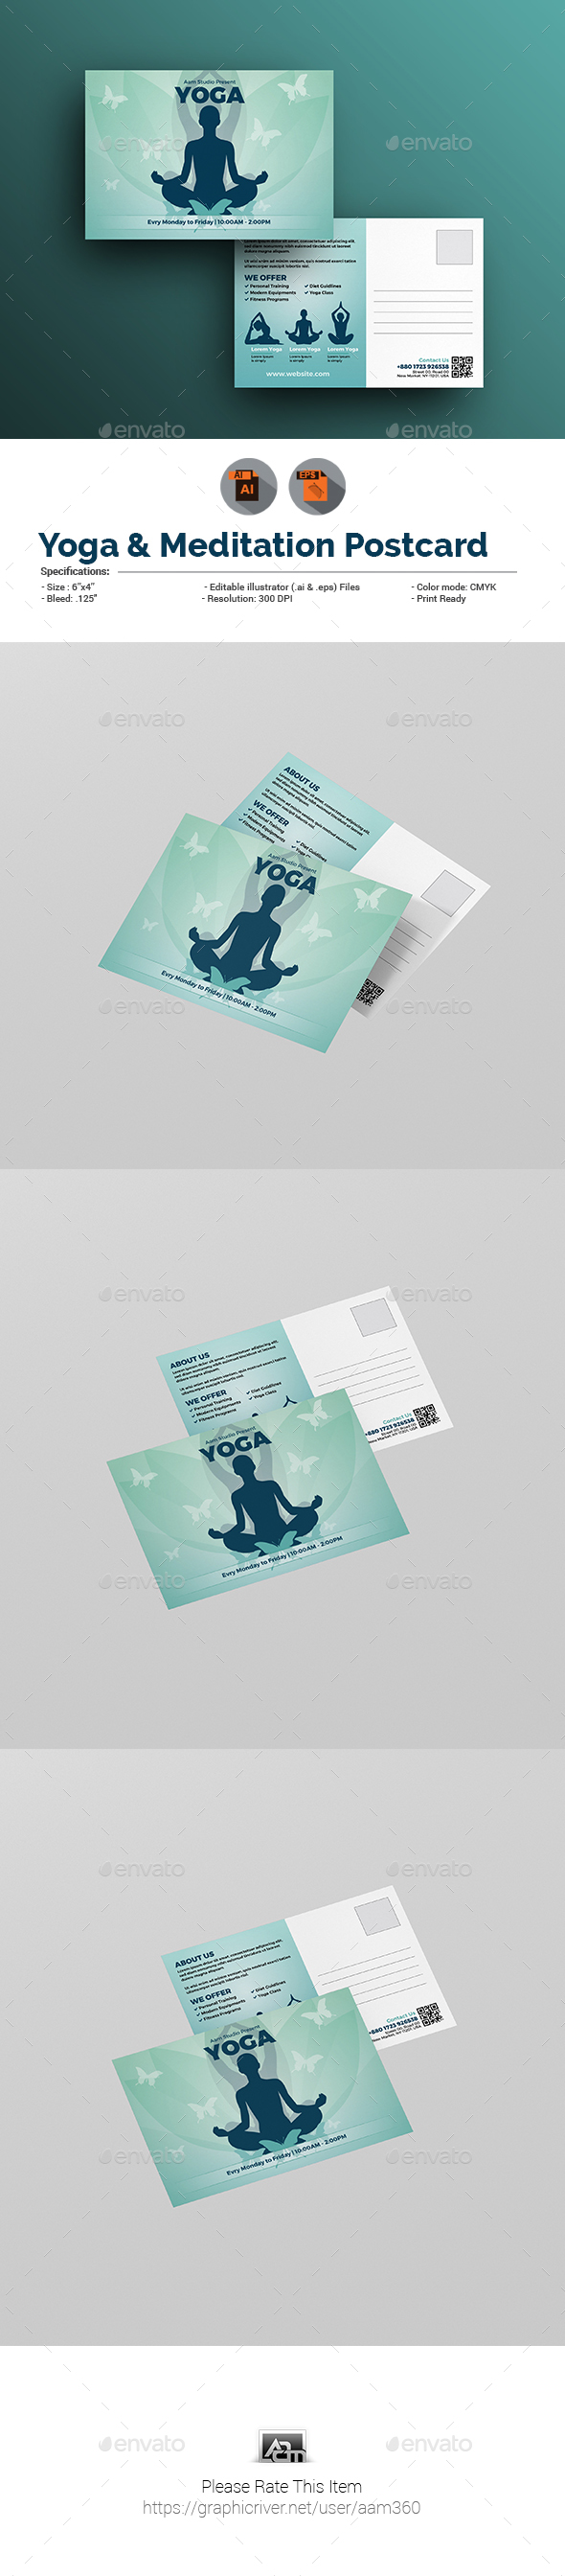 Fitness & Yoga Postcard Template - Cards & Invites Print Templates